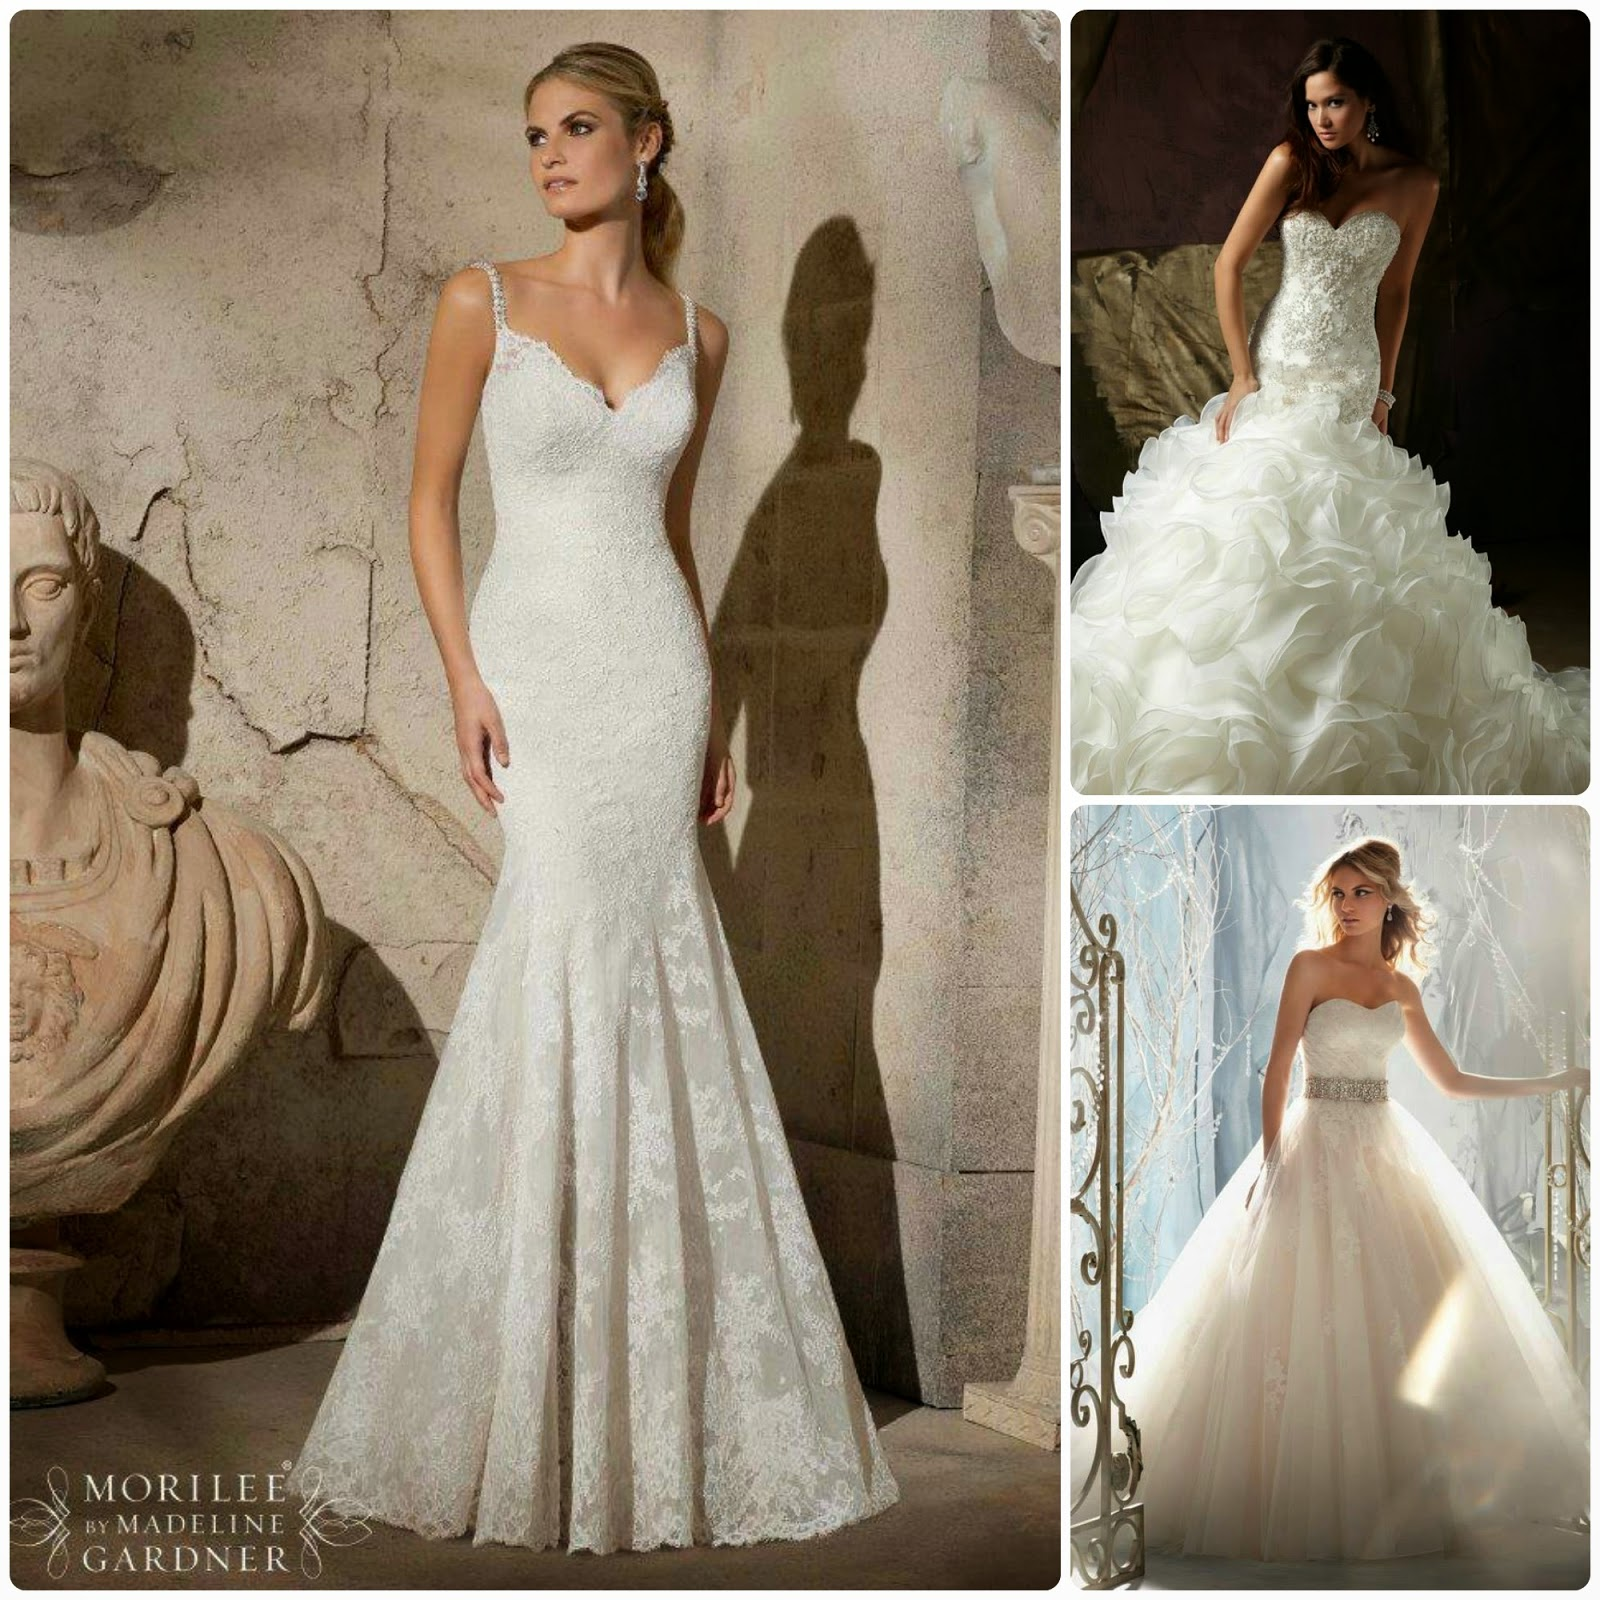 Where To Buy Wedding Dresses In Miami 2